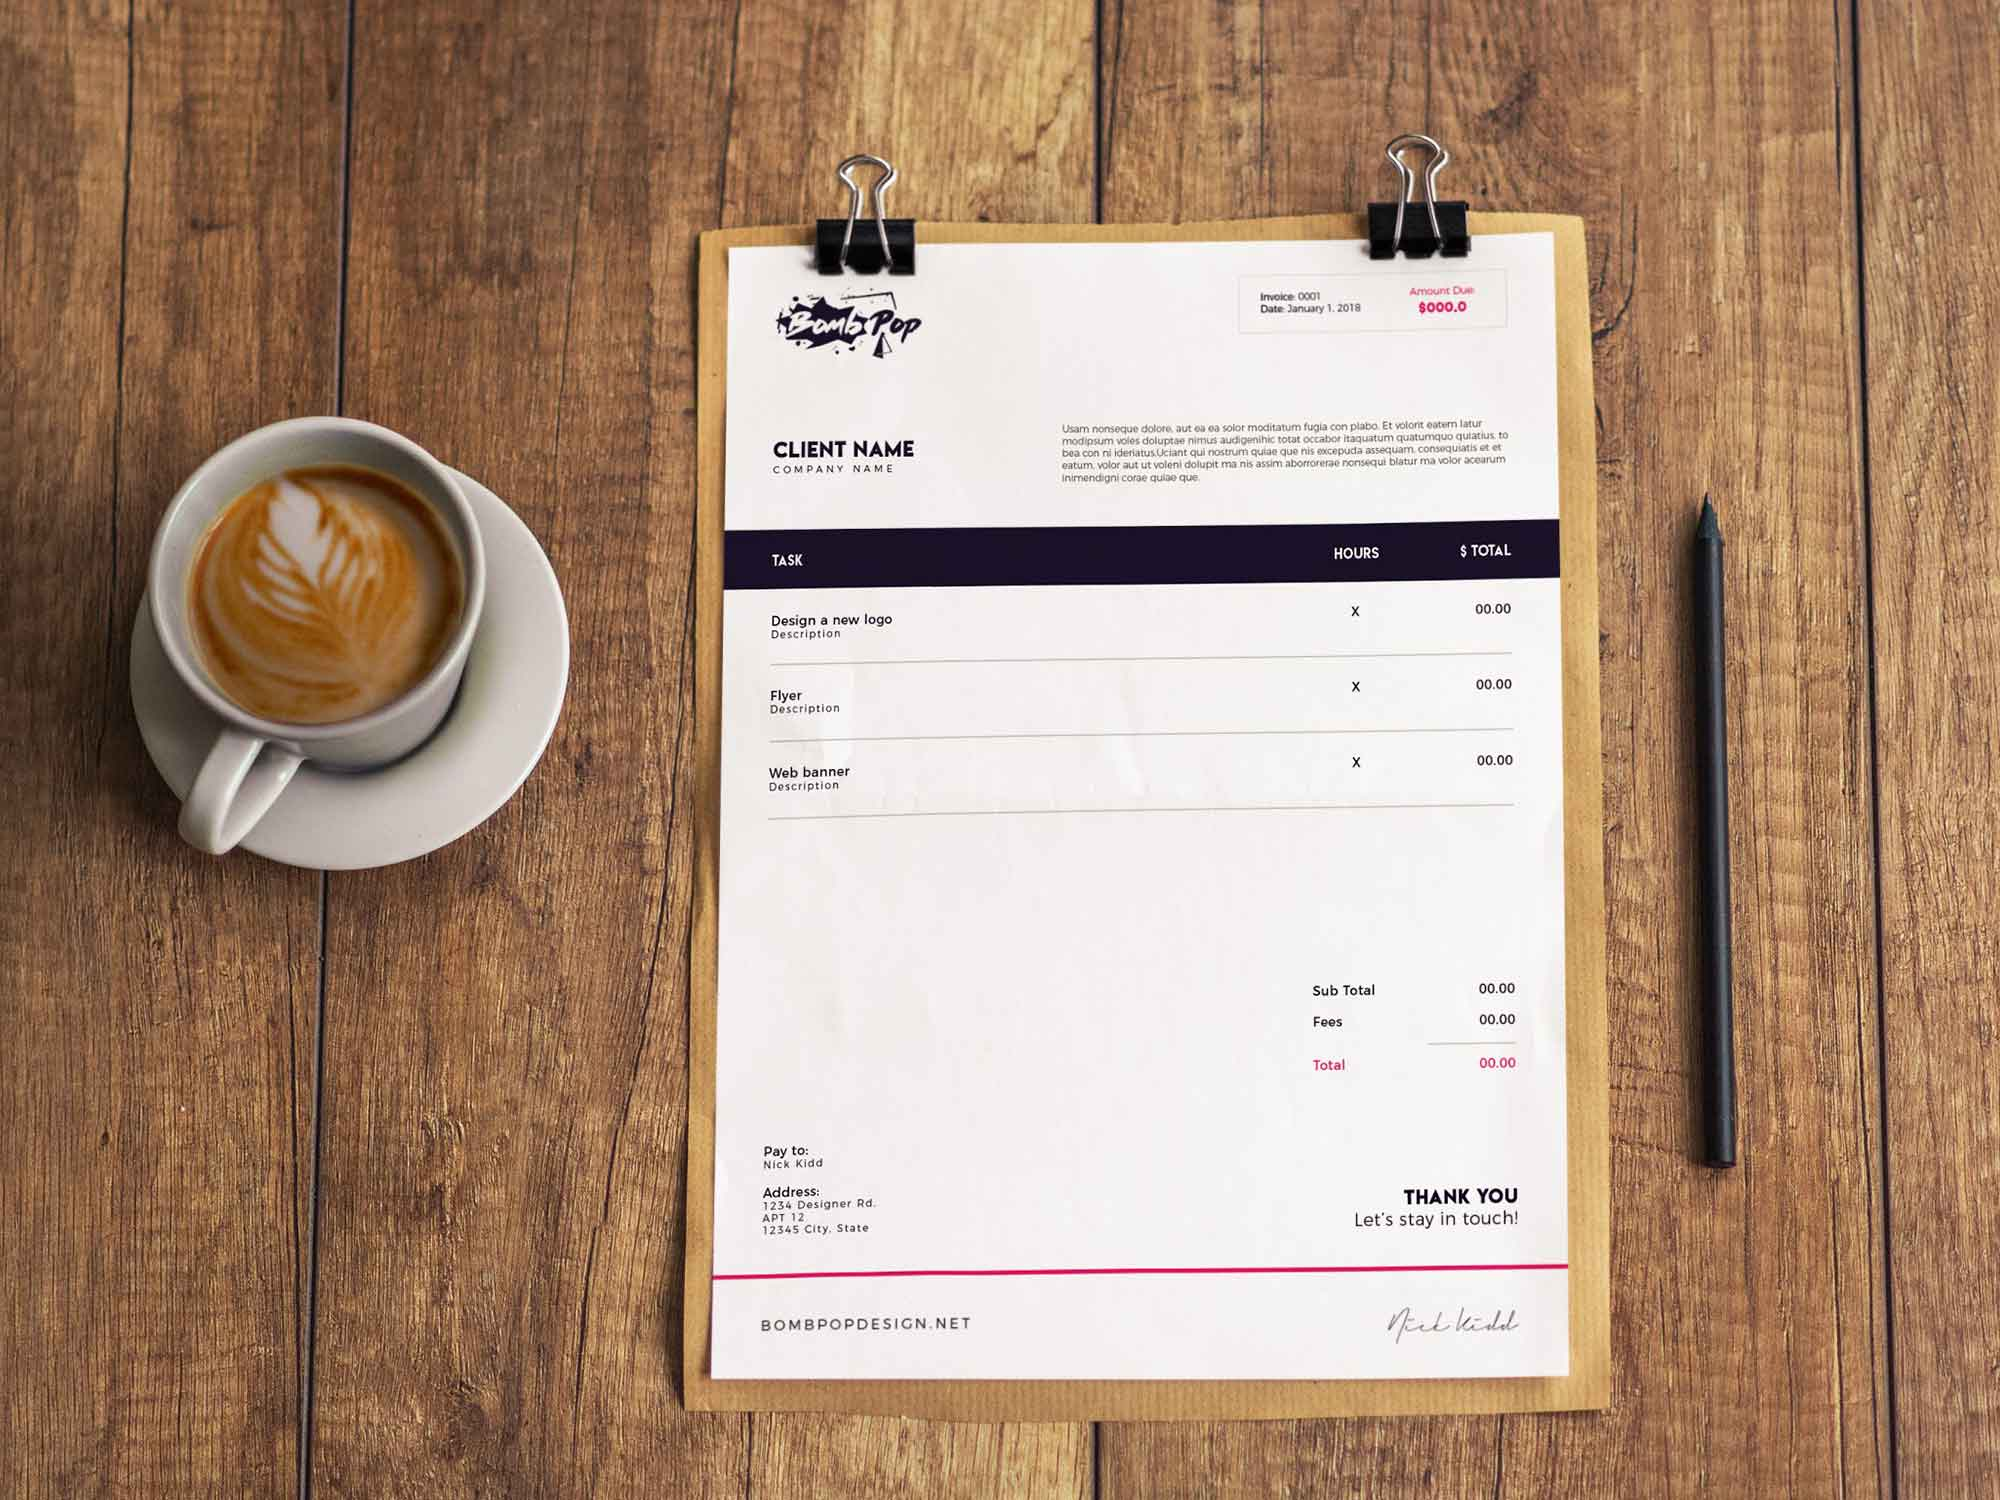 Indesign Invoice Template 2